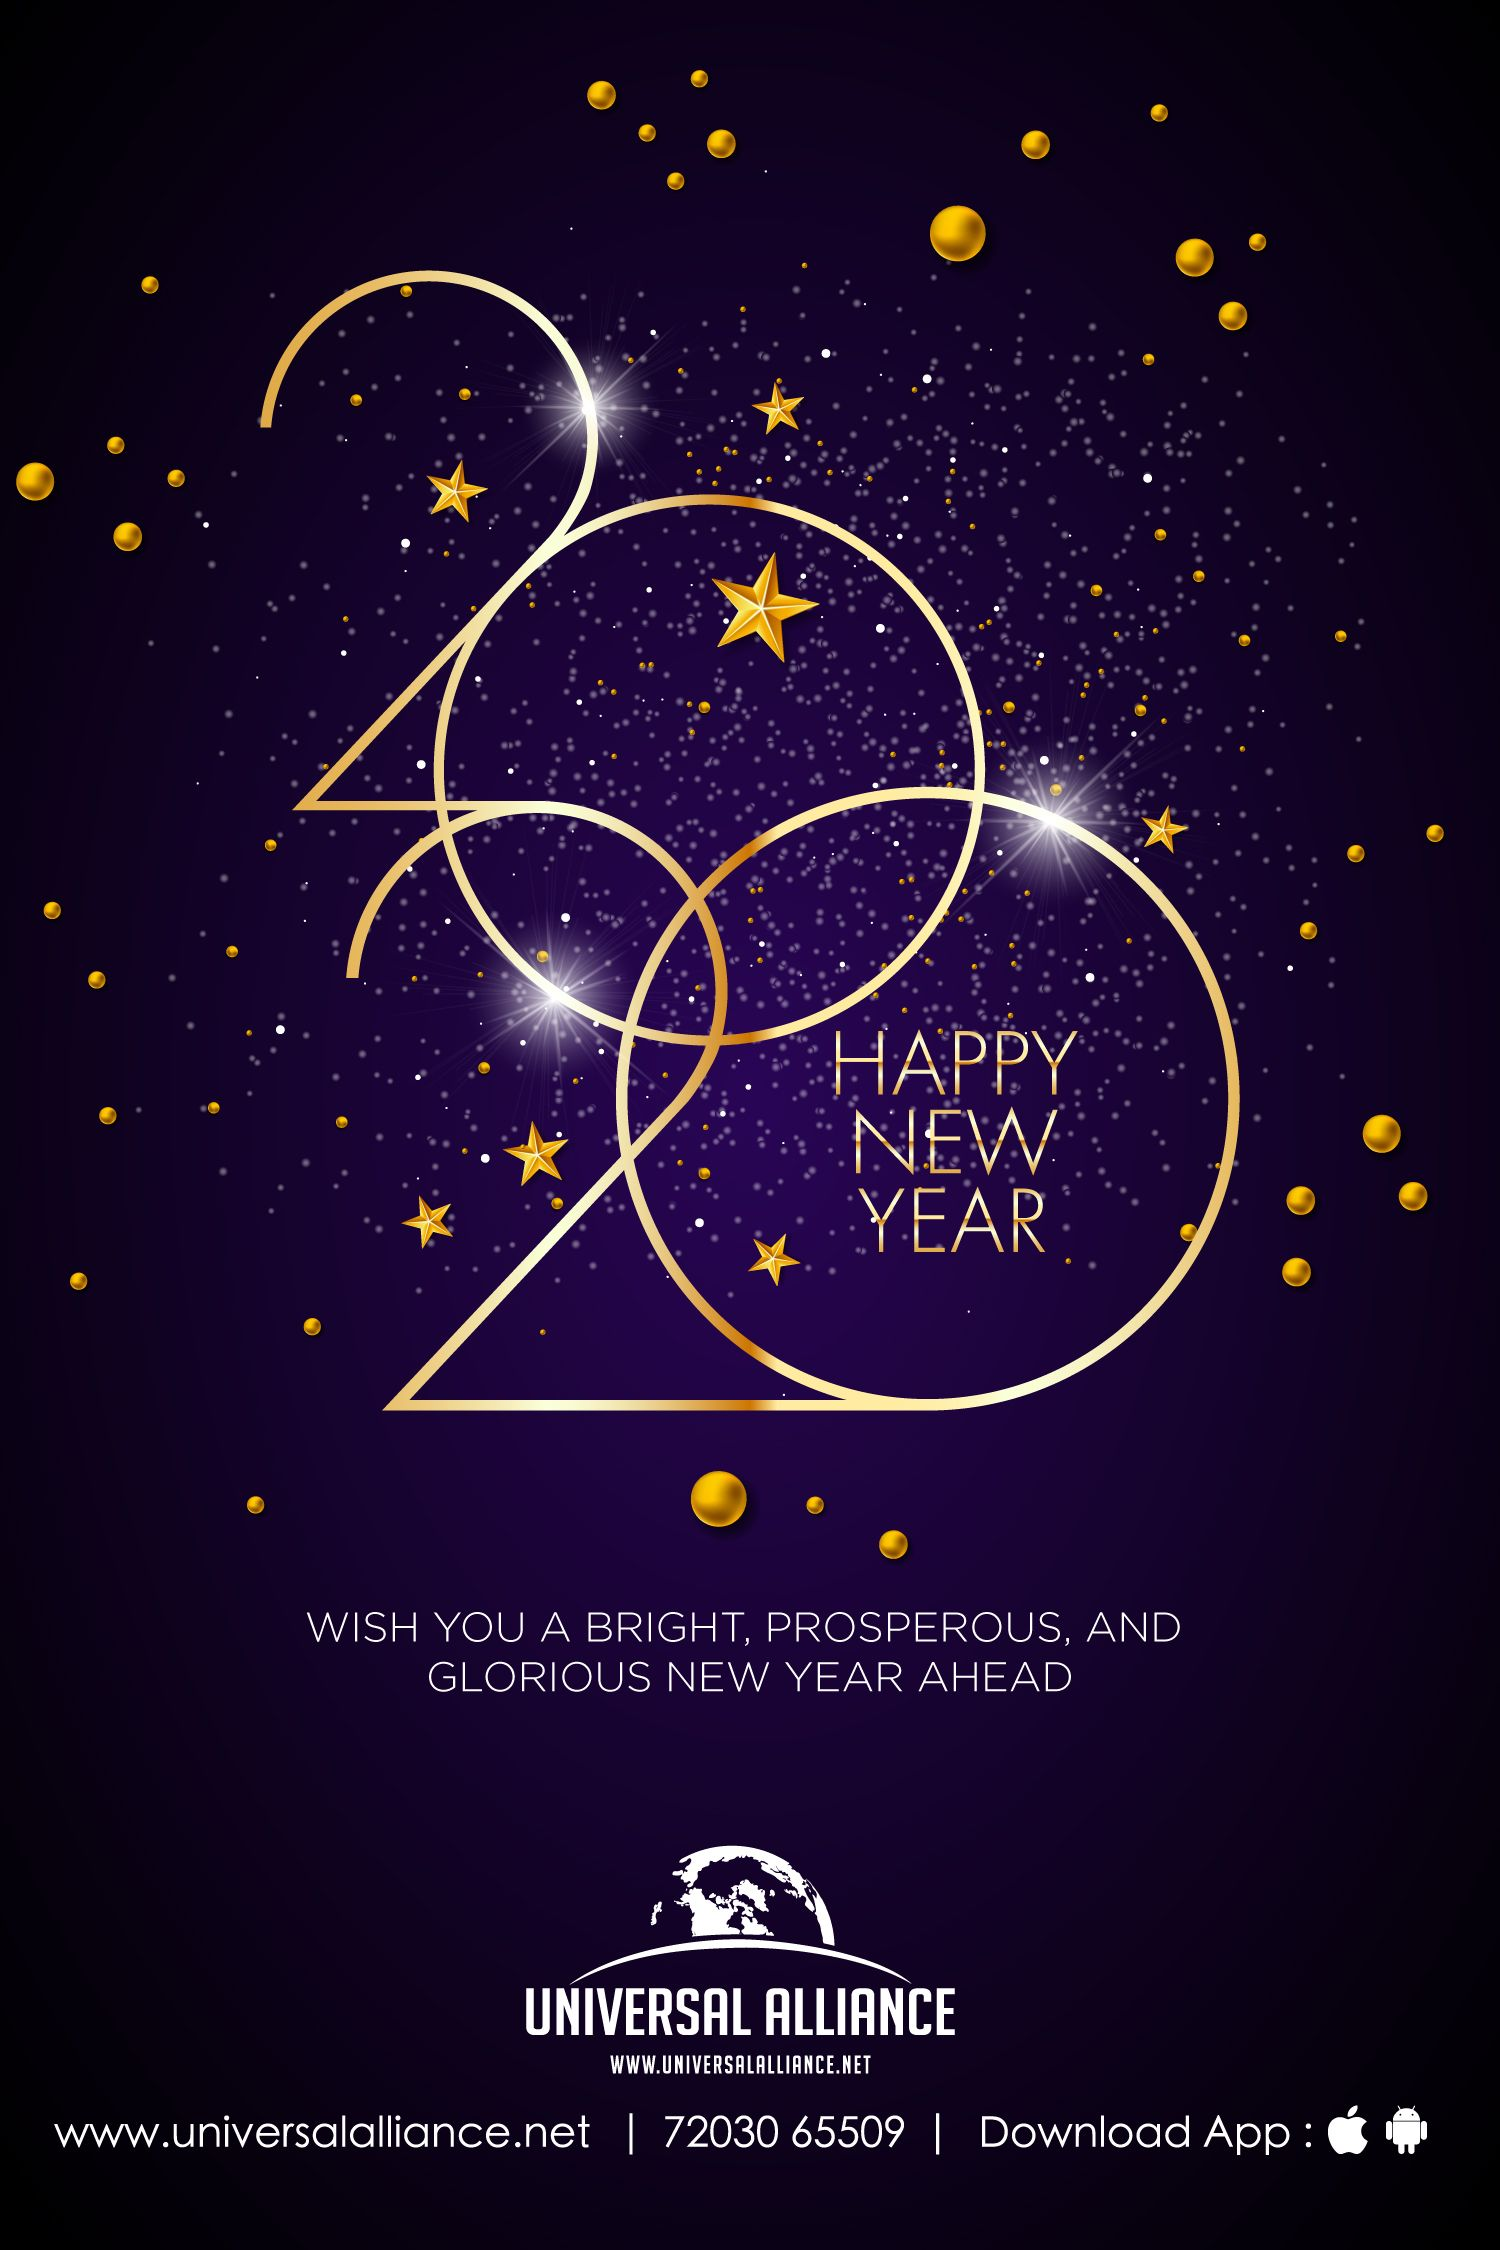 Wish you a bright, prosperous, and glorious NewYear ahead